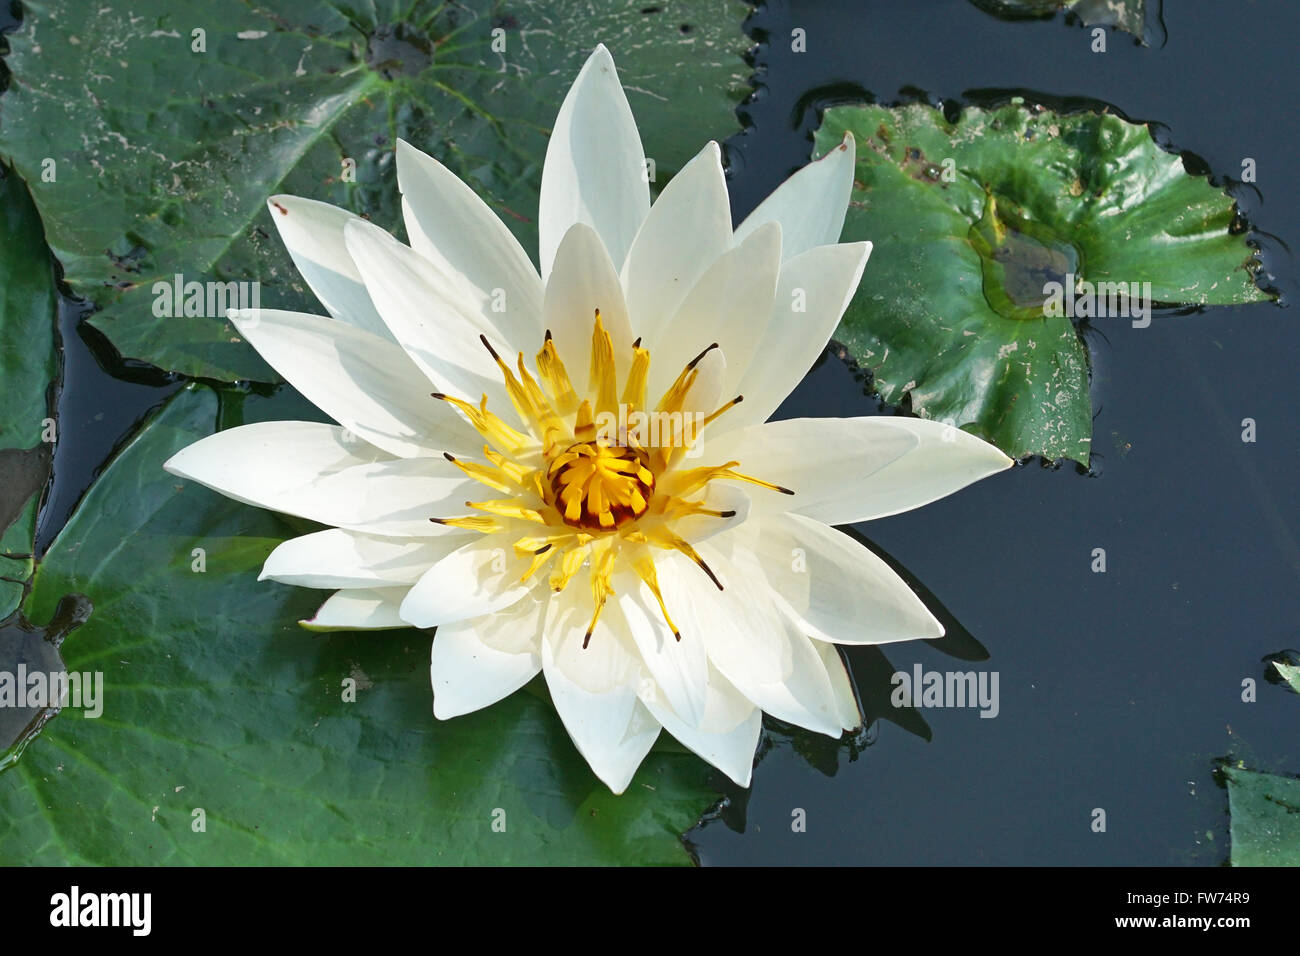 White Water Lily Flowers Of Bali Indonesia Stock Photo 101575693